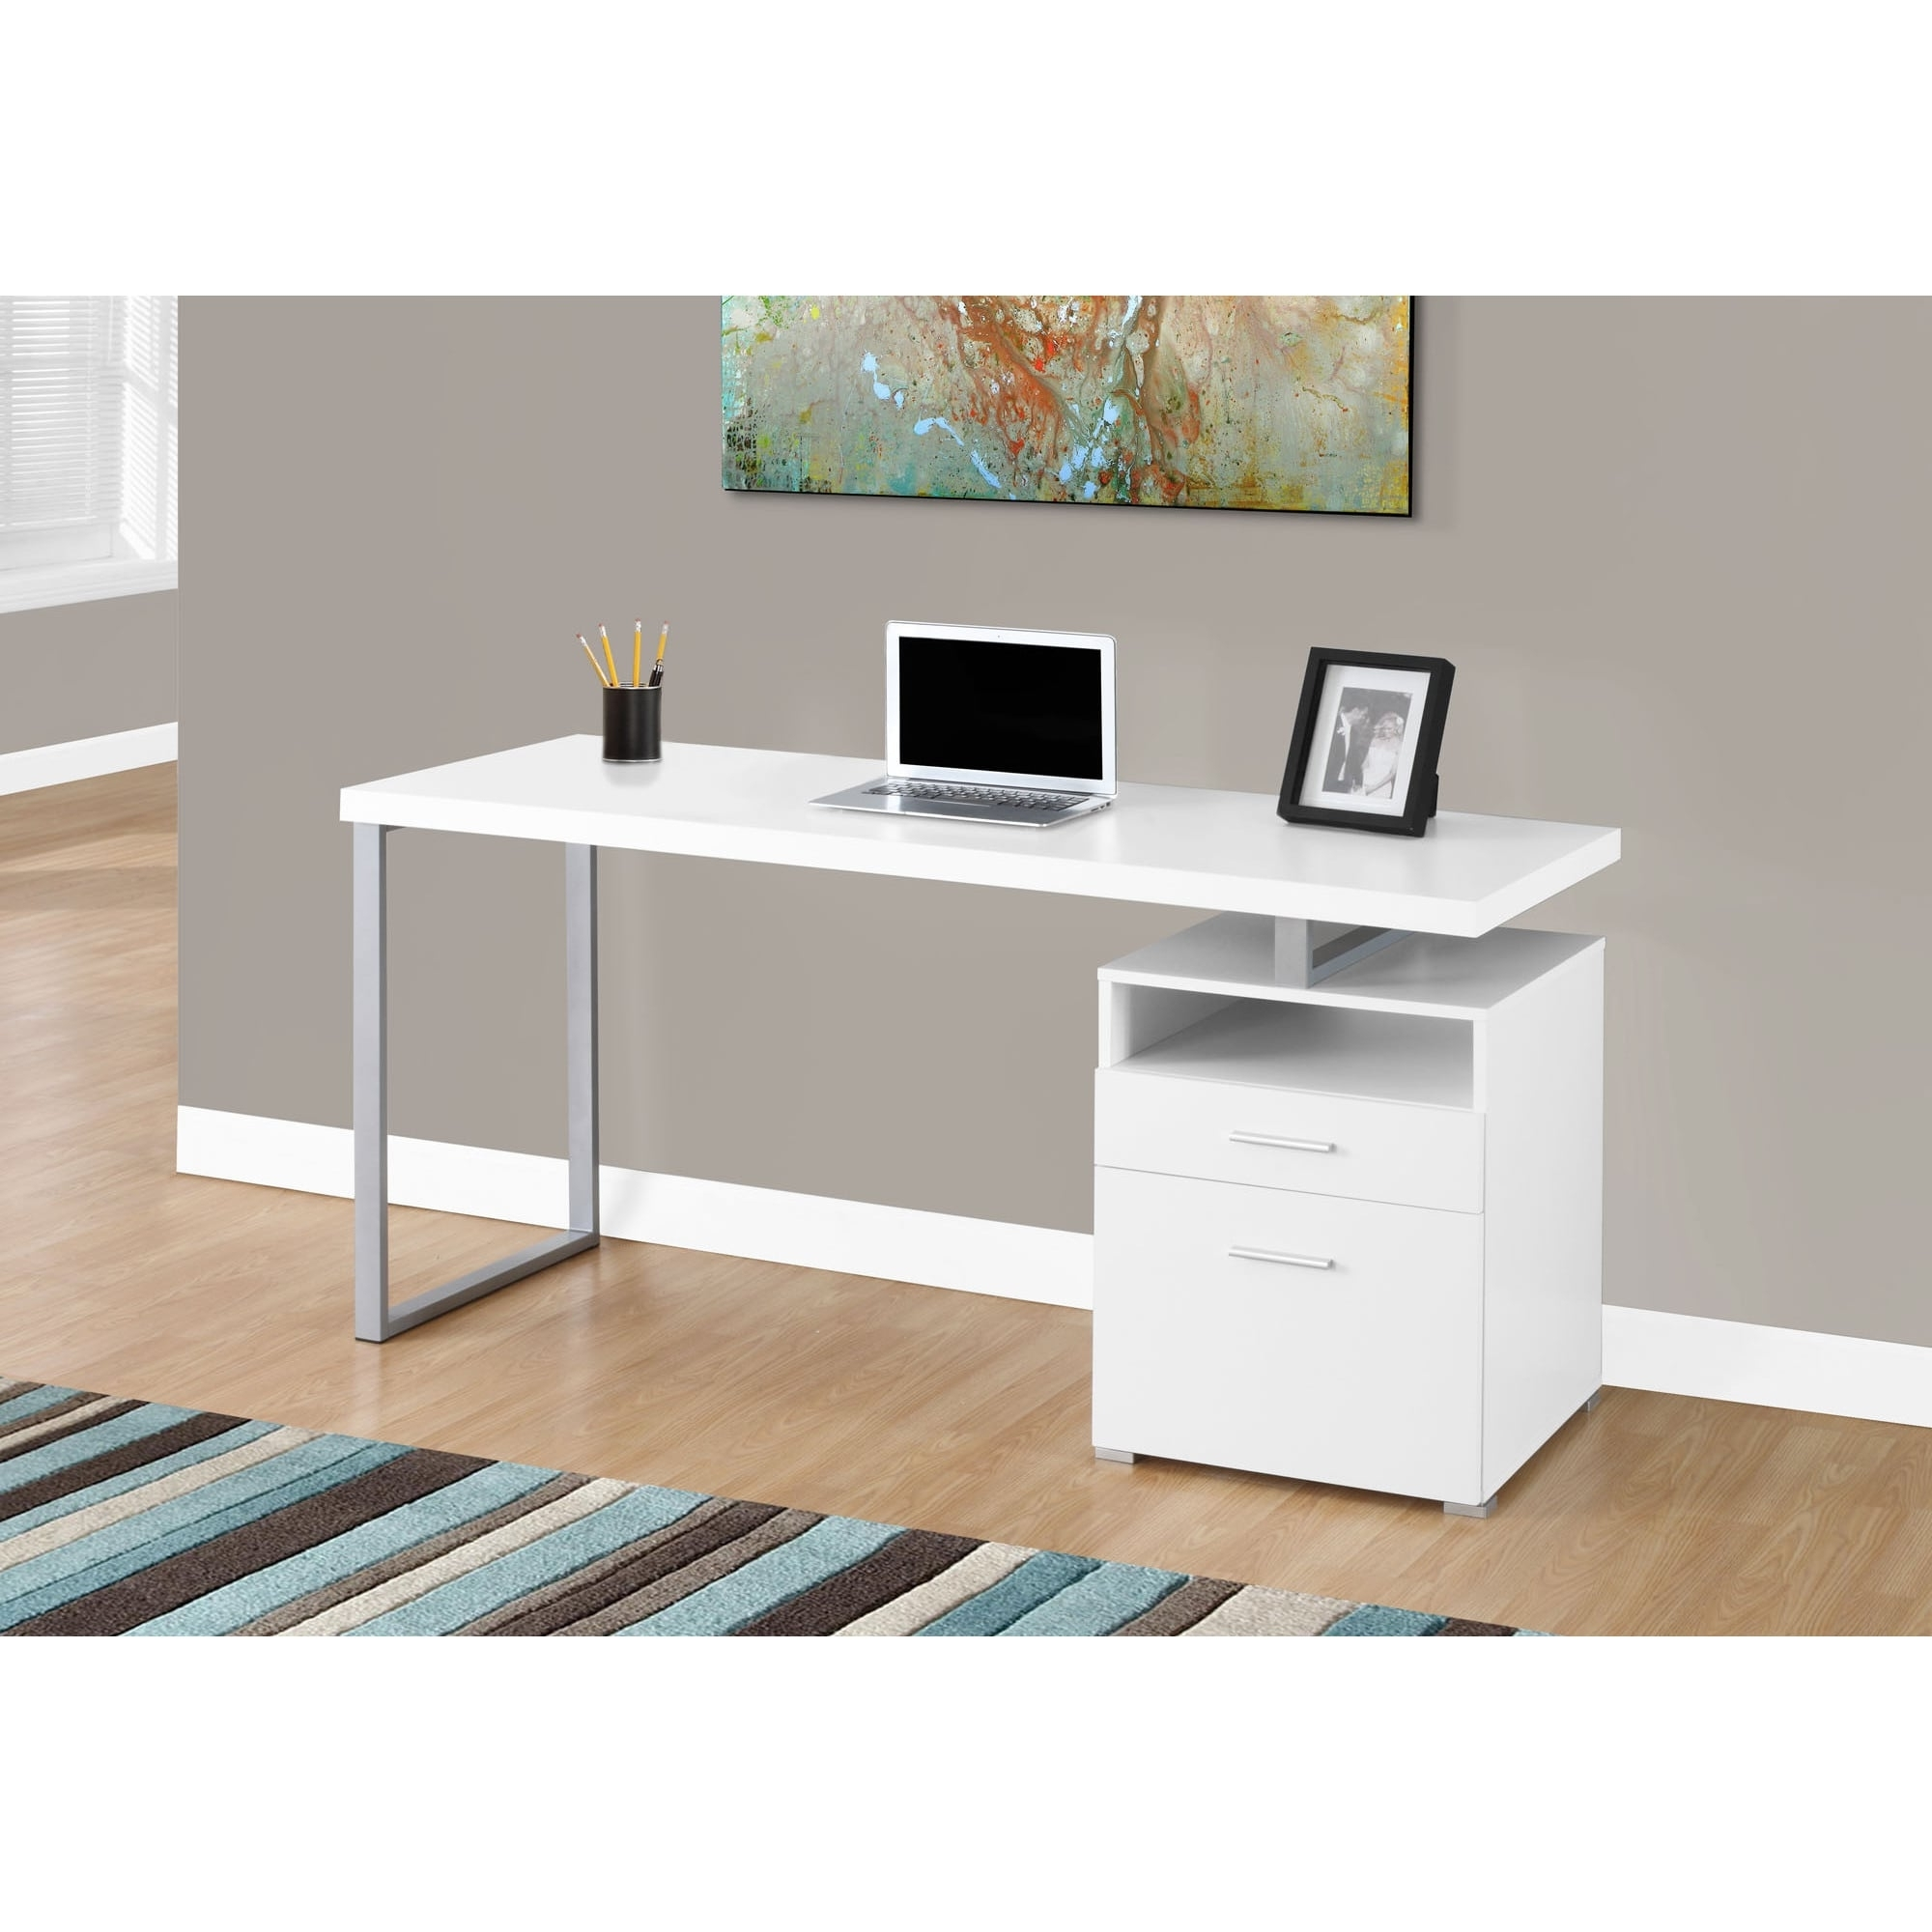 Oliver & James Joffe White Metal Computer Desk – Free Shipping Throughout Newest White Computer Desks (View 15 of 20)